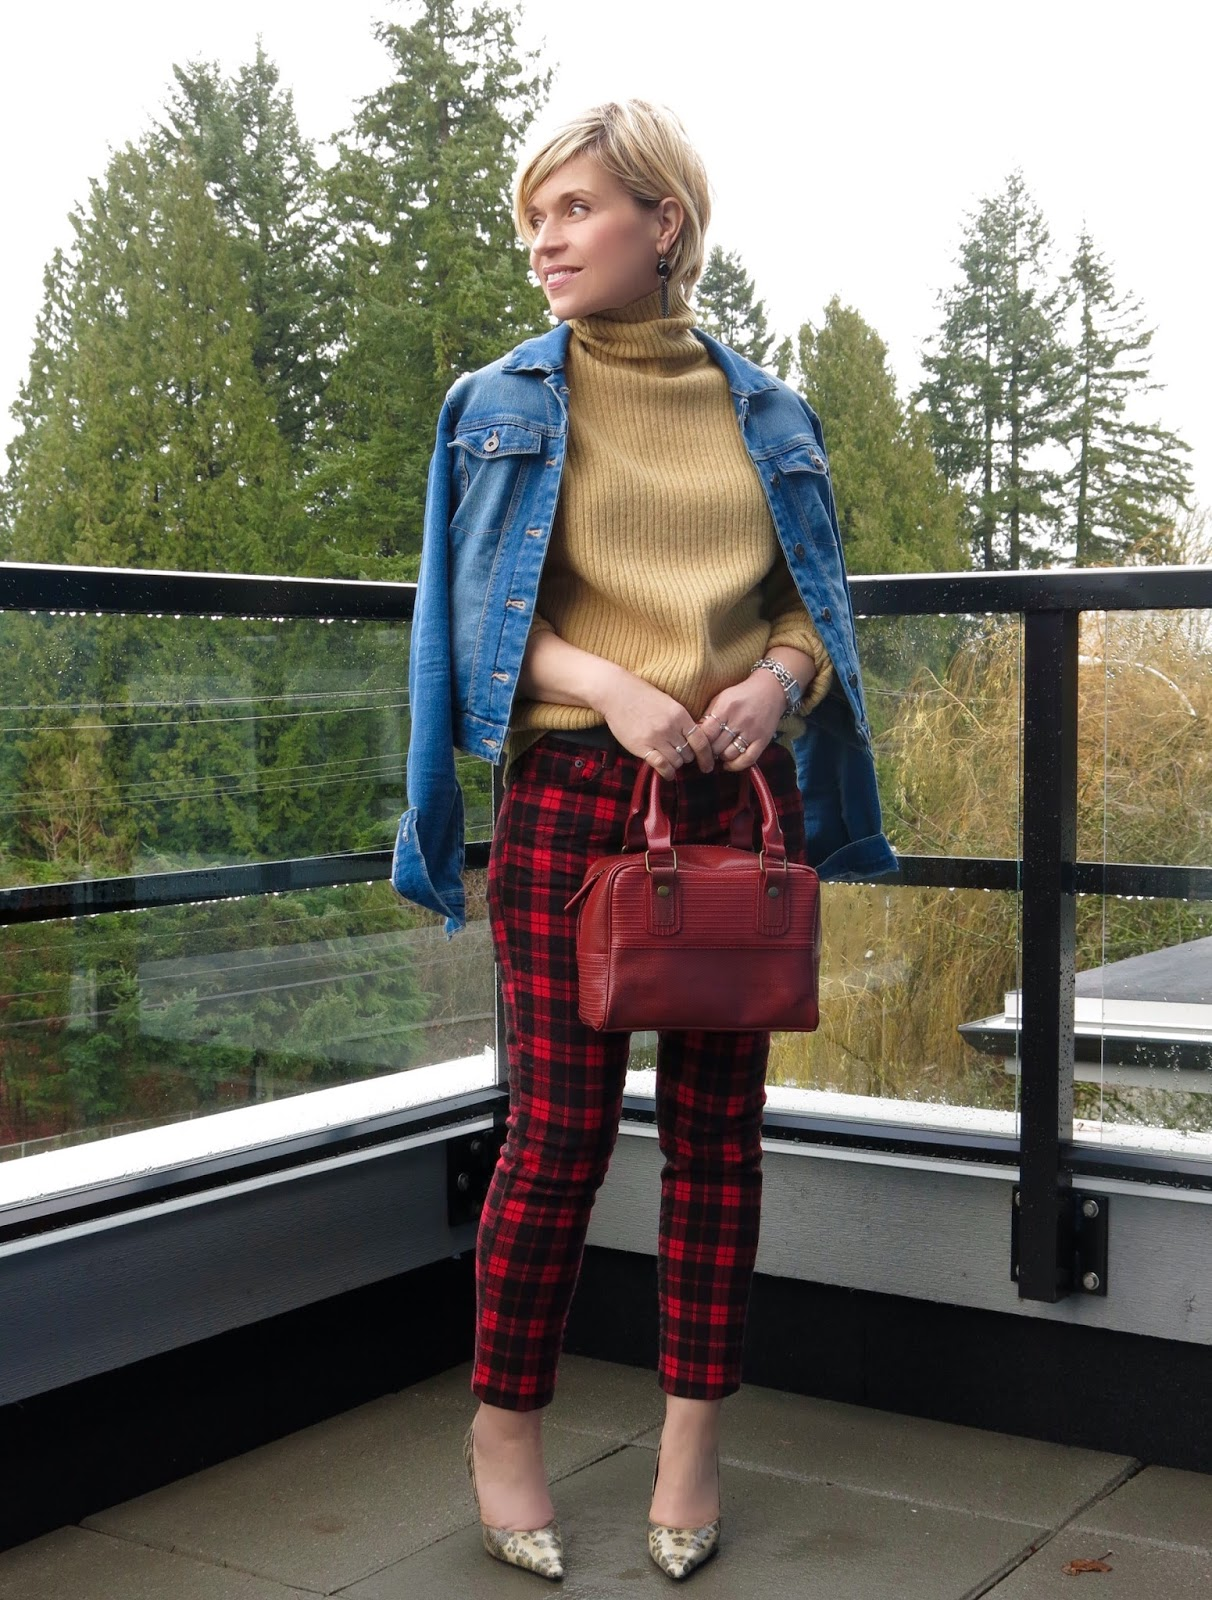 Pageantry: tartan skinnies, turtleneck sweater, and a denim jacket